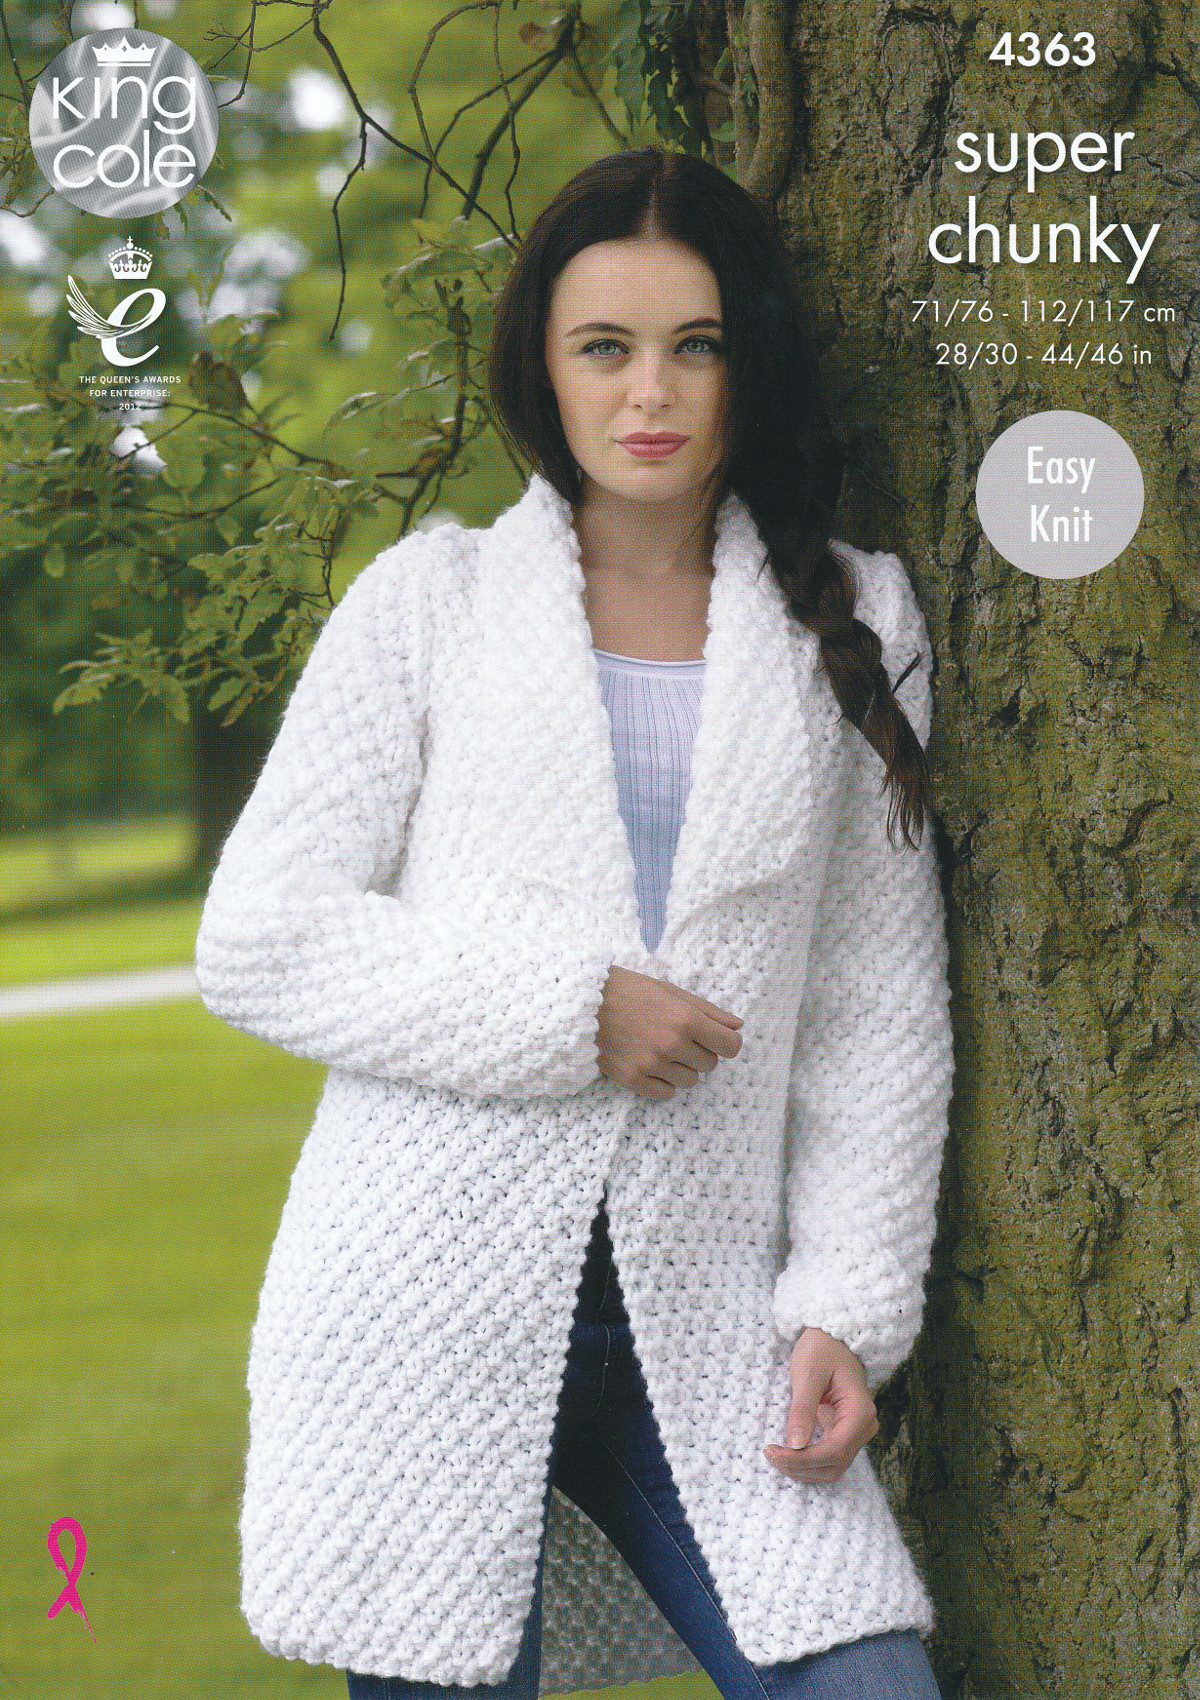 Sweater Jacket Knitting Pattern Details About Ladies Super Chunky Knitting Pattern King Cole Easy Knit Sweater Jacket 4363